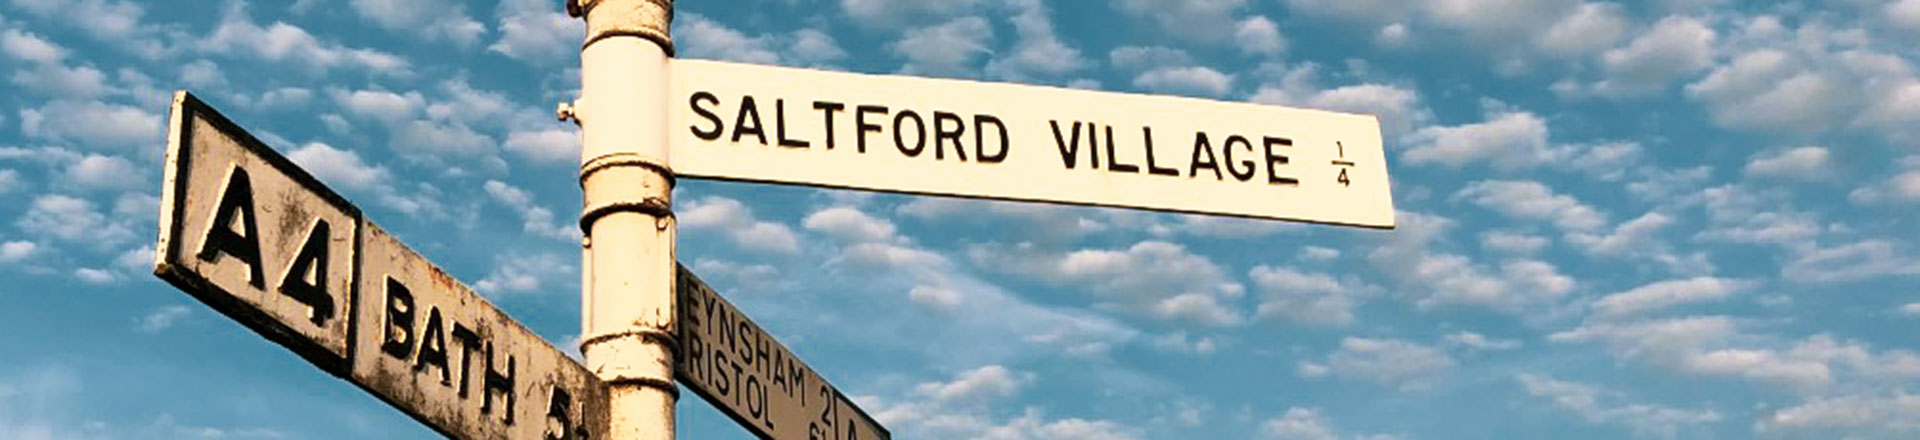 sign post showing Saltford Village between Bath and Bristol